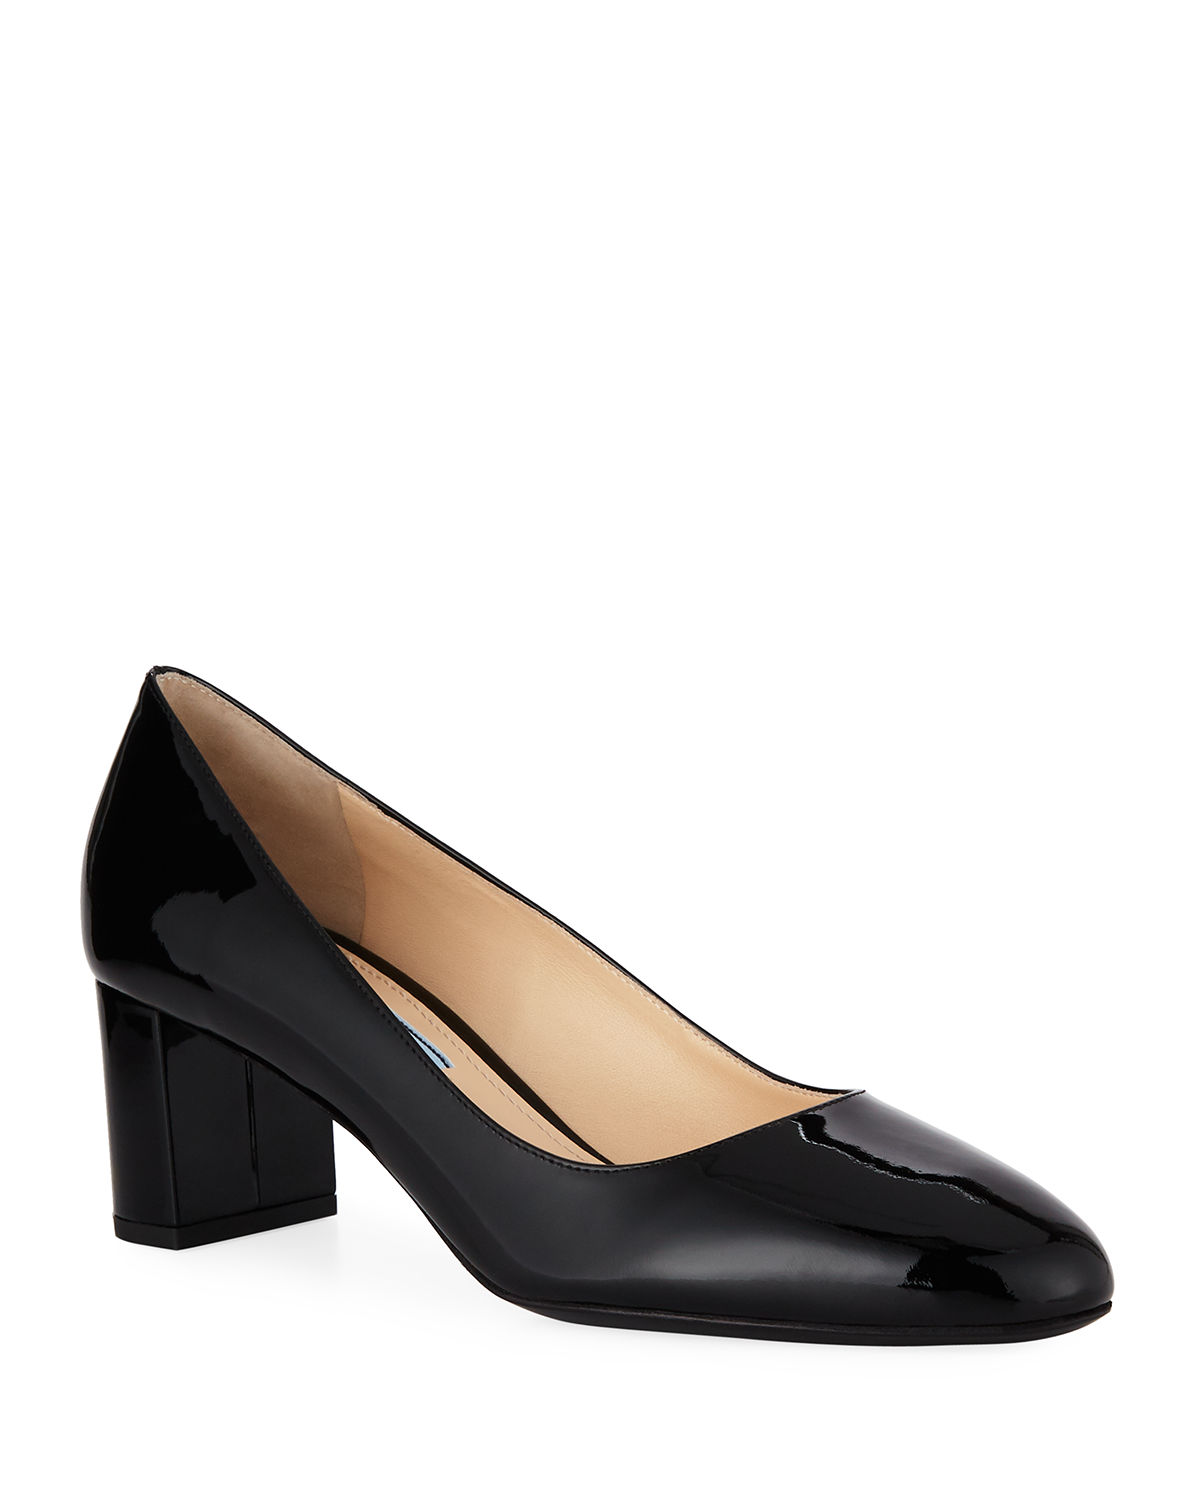 21799aa4d74 Prada Patent Leather Round-Toe 55mm Pump